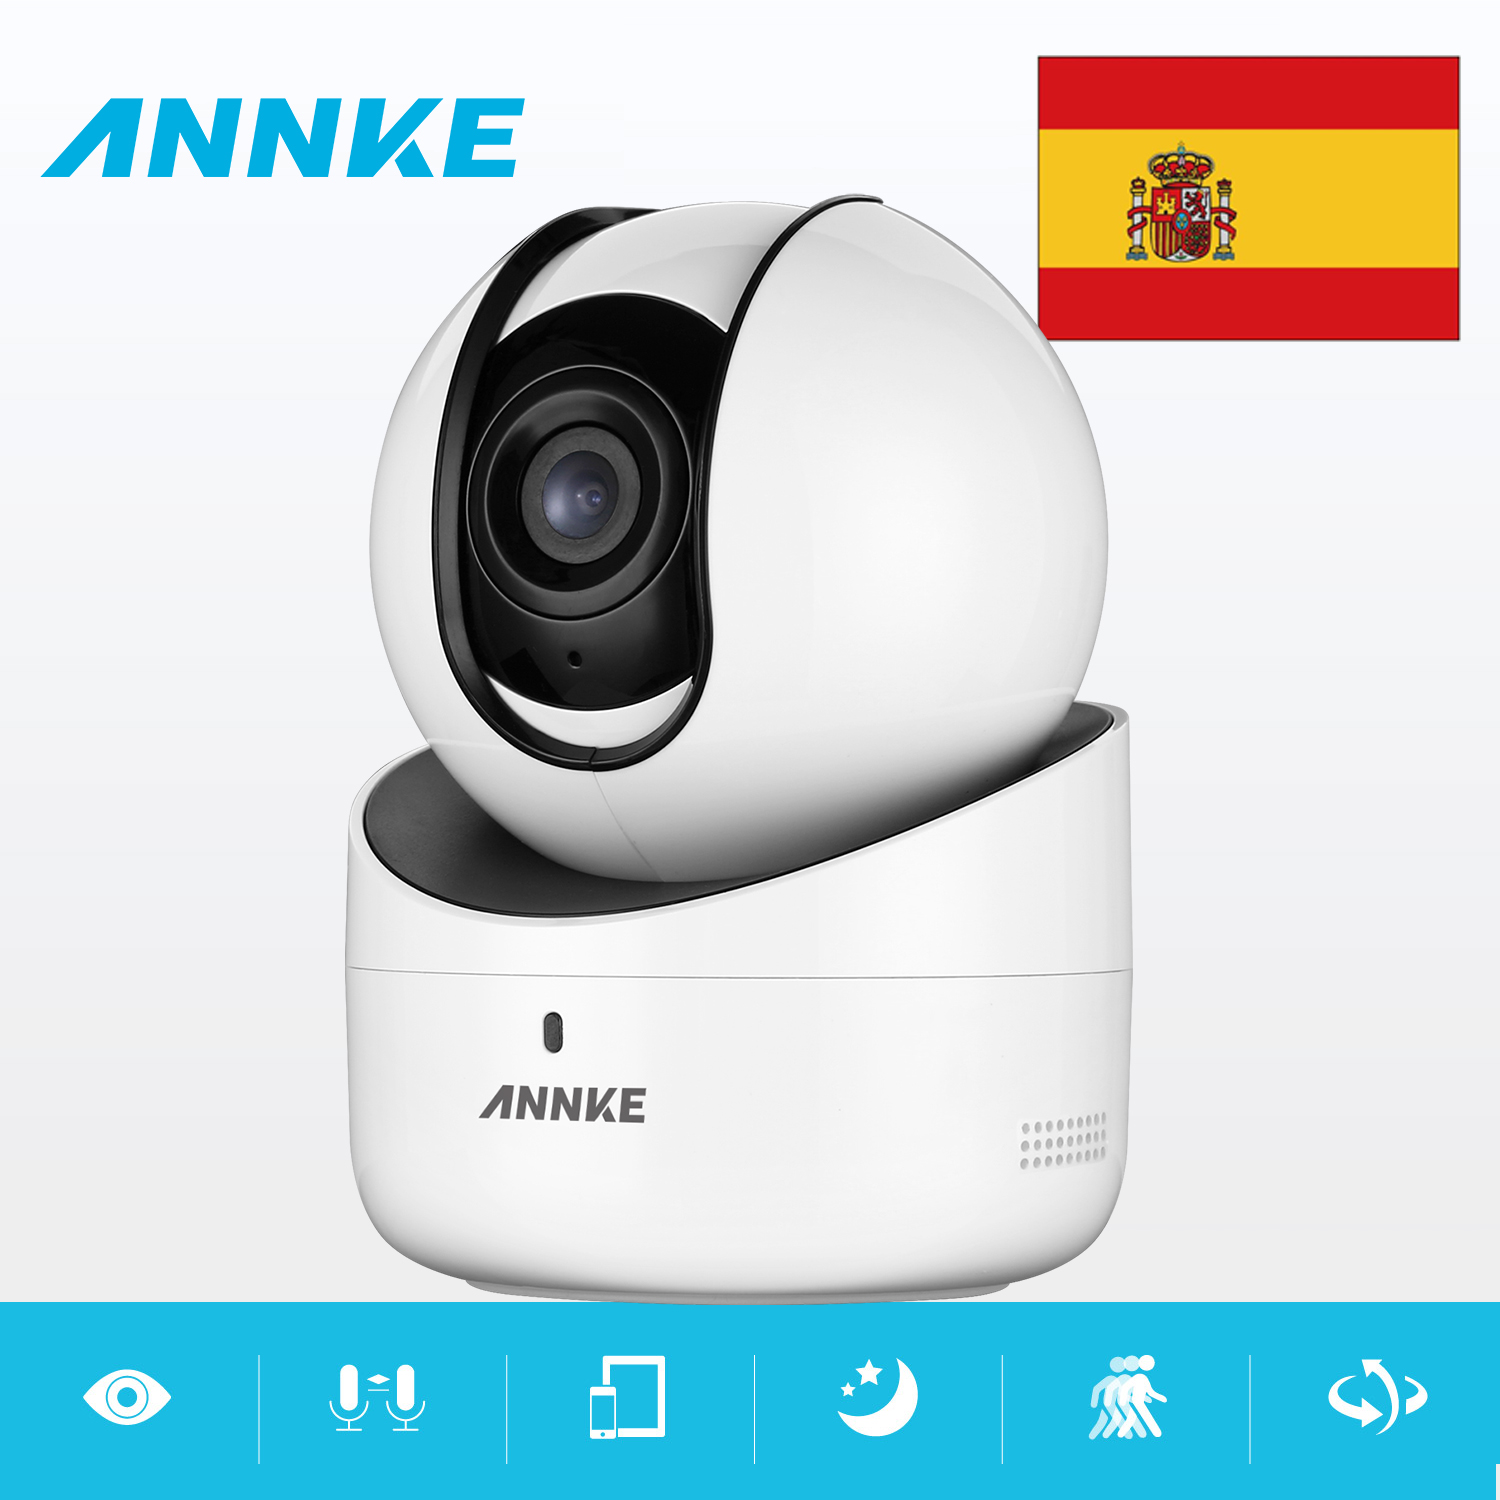 Clearance Sale For Spain : ANNKE 720P WiFi IP Camera Network Security IR CUT Motion Detecte Intelligent Alert WDR ROI 3D DNR<br>